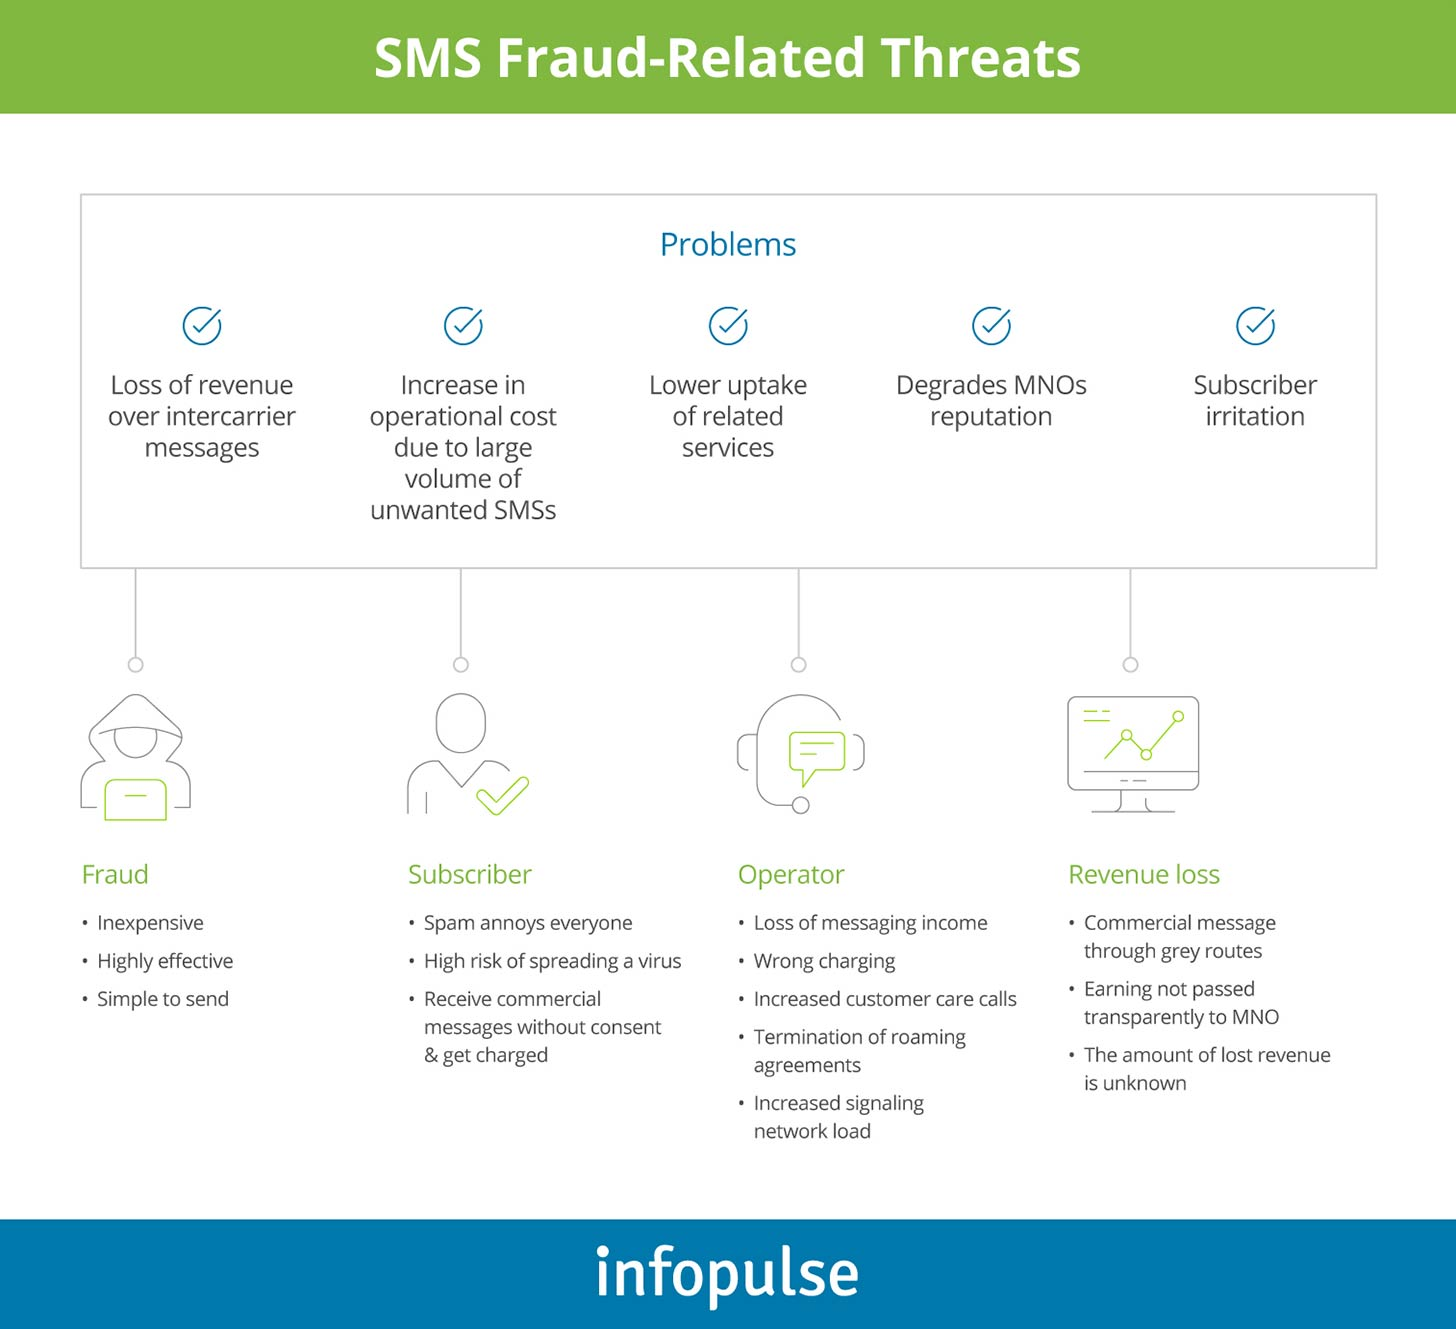 SMS Fraud-Related Threats  - Infopulse - 2